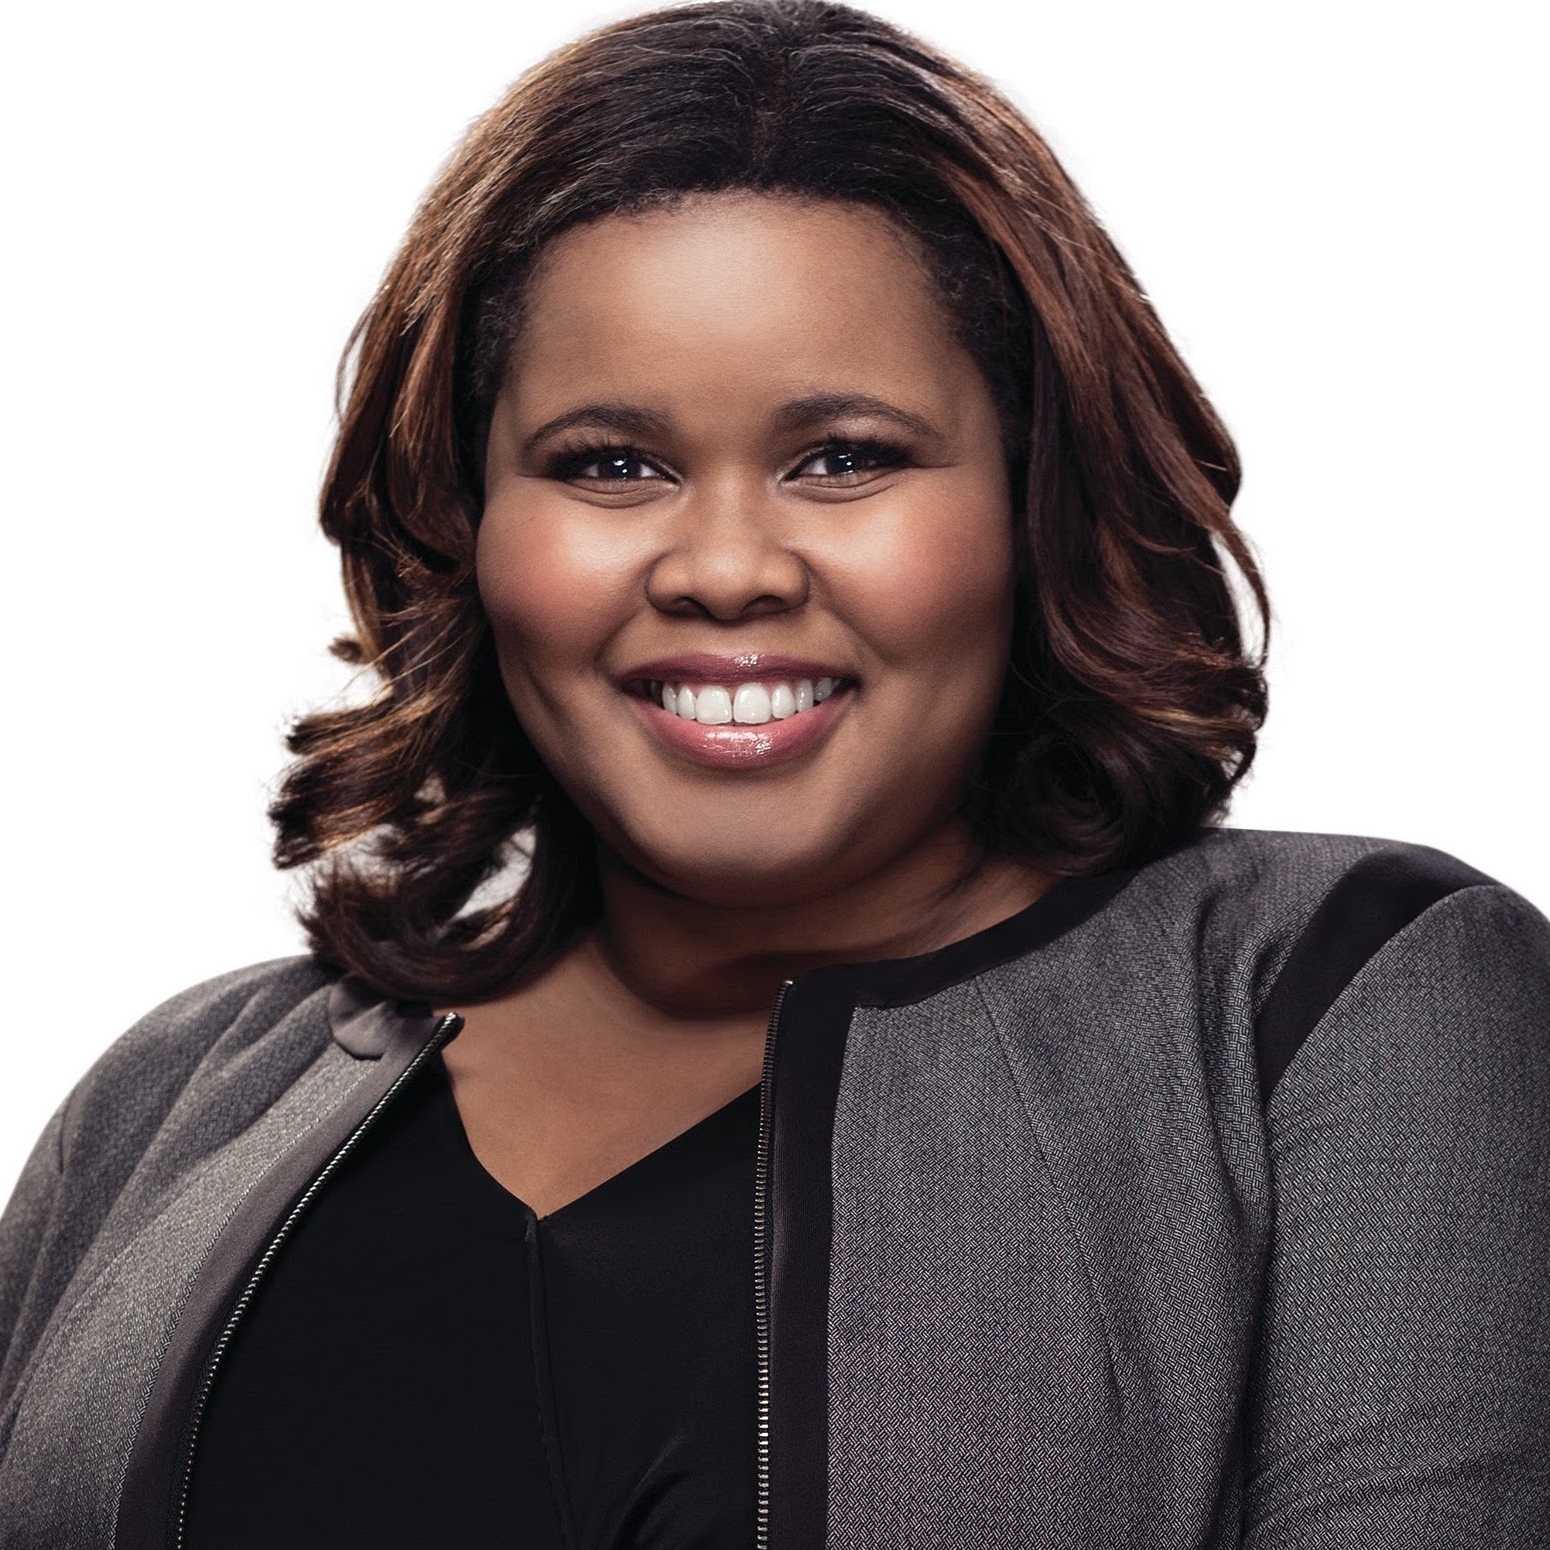 Lindiwe Mazibuko is a South African public leader, speaker, writer and academic fellow. She was the first black woman in South African history to be elected Leader of the Opposition in Parliament.  Mazibuko is also the co-founder and Executive Director of Apolitical Academy, a movement to diversify public sector leadership globally.  A graduate of the University of Cape Town in South Africa and the Harvard Kennedy School of Government in the United States, Lindiwe was an elected representative in South Africa's National Assembly until May 2014, when she resigned from active politics in order to return to higher education.  She has served as fellow of the Institute of Politics (IOP) at Harvard University and of the Stellenbosch Institute for Advanced Study (STIAS) in South Africa. She is also a World Economic Forum Young Global Leader and an advisory committee member at Apolitical.